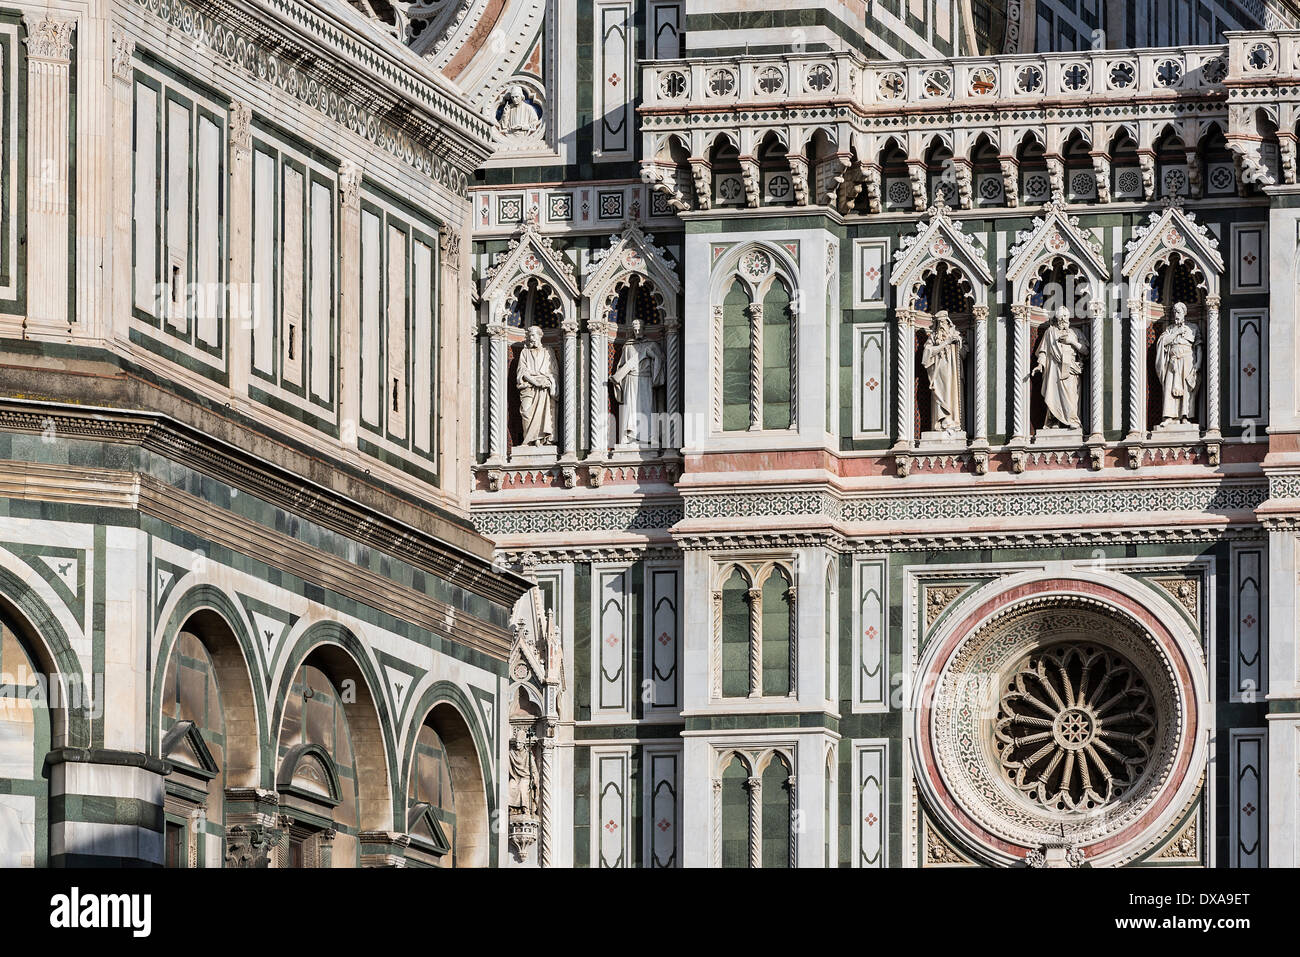 Santa Maria del Fiore Cathedral detail, Florence, Italy Stock Photo